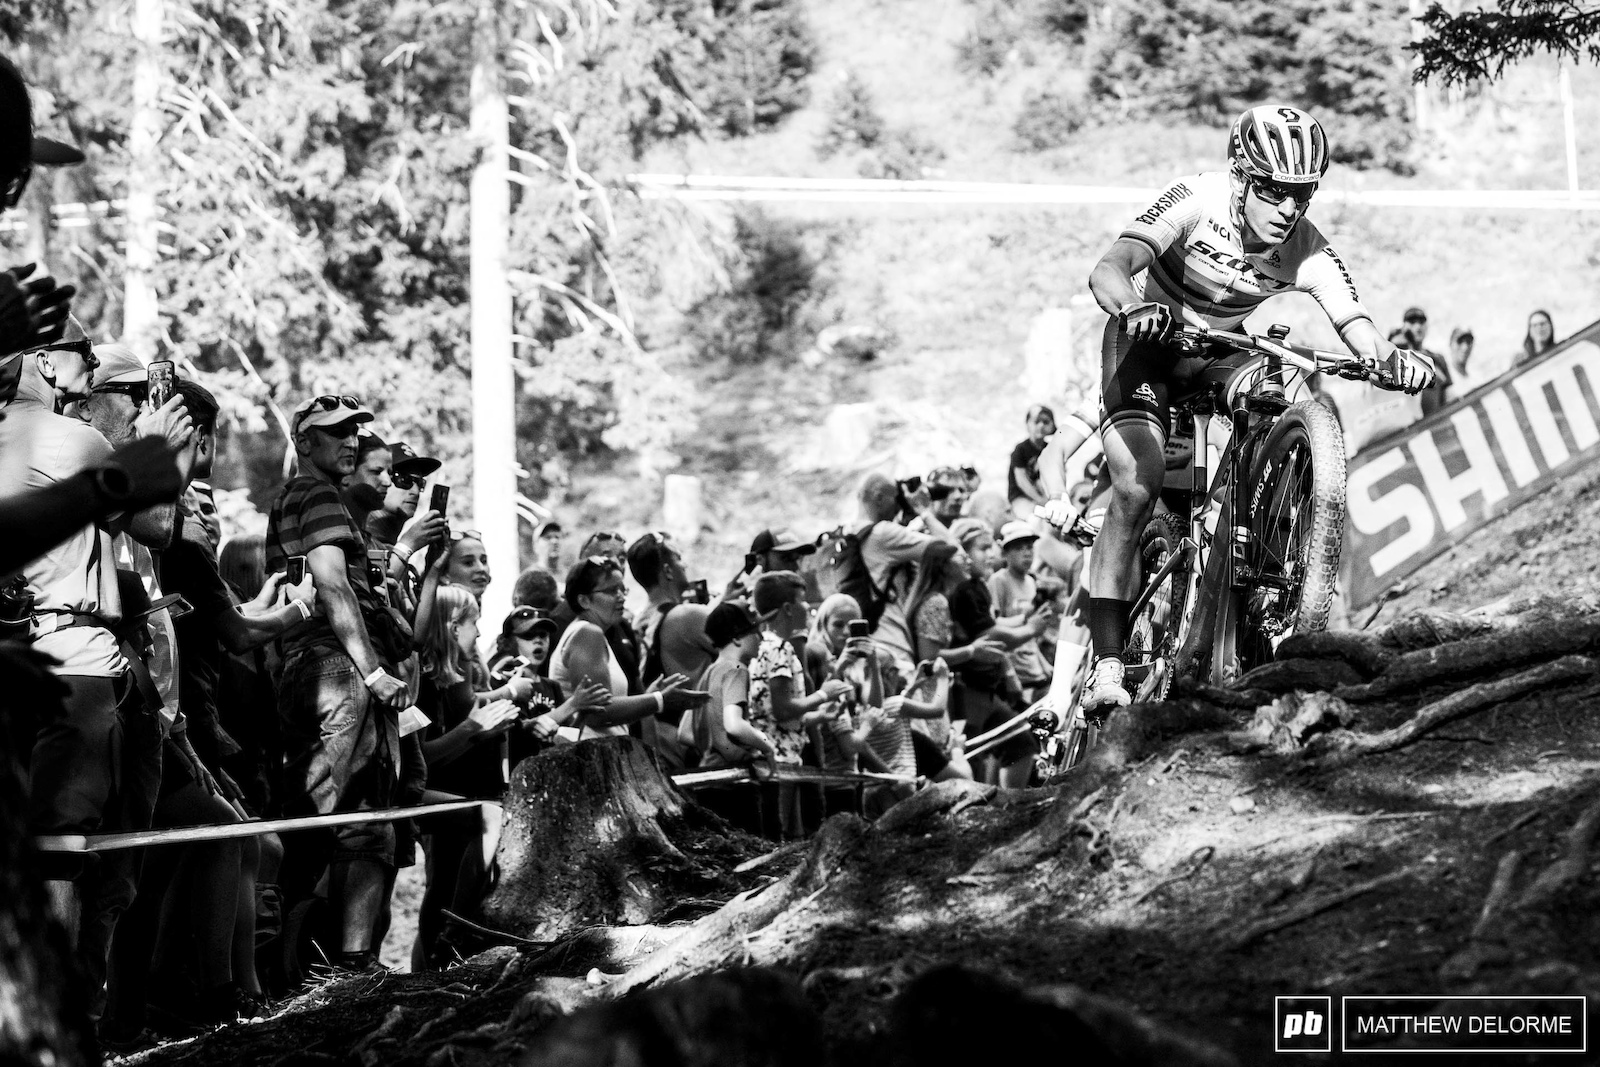 Nino Schurter had his moments at the front be he would have to settle for third.